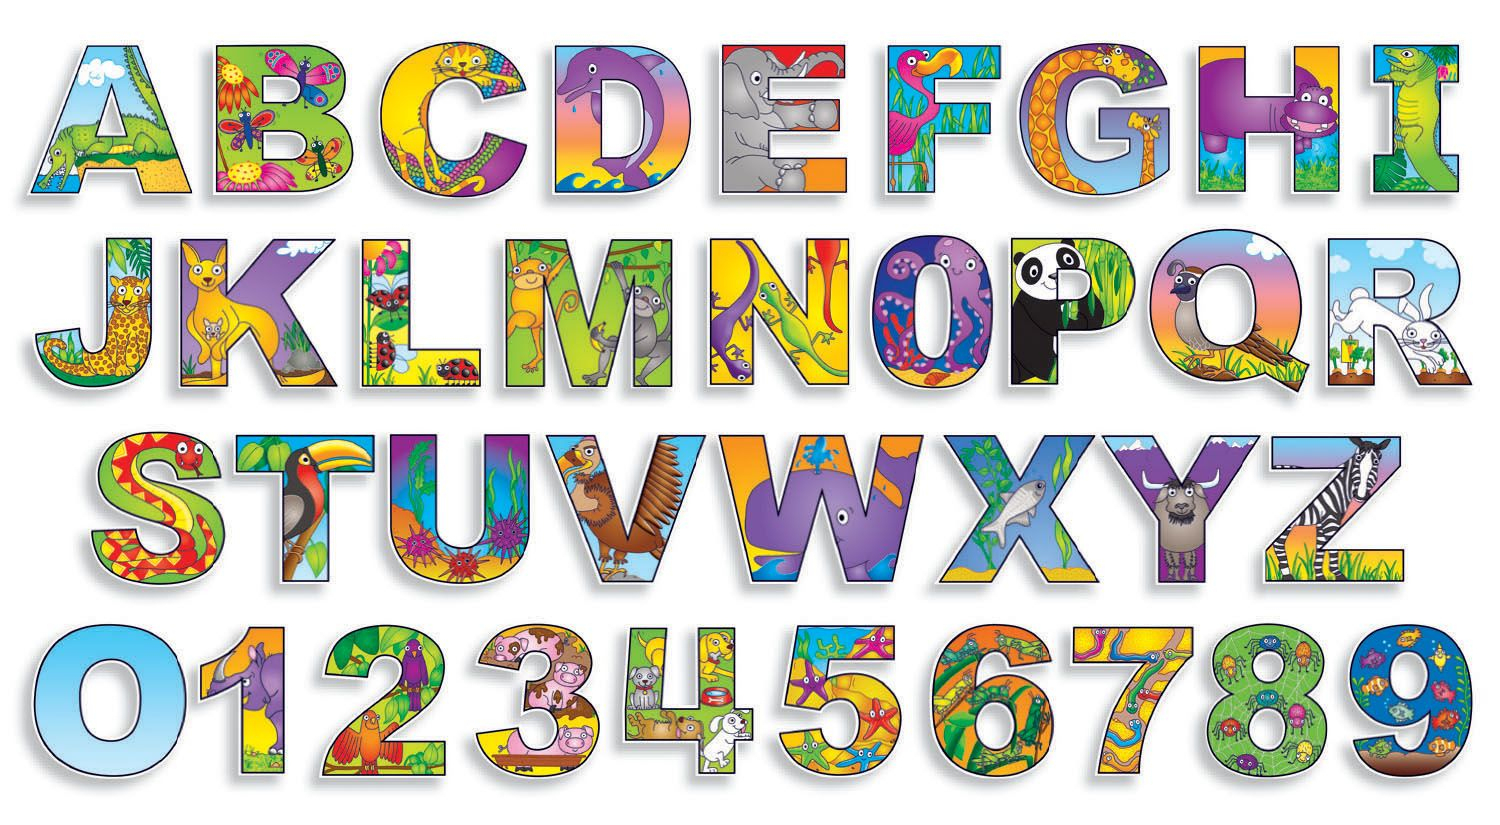 Free Printable Bulletin Board Letters | Illustrated+Alphabet+%26+ - Free Printable Bulletin Board Letters